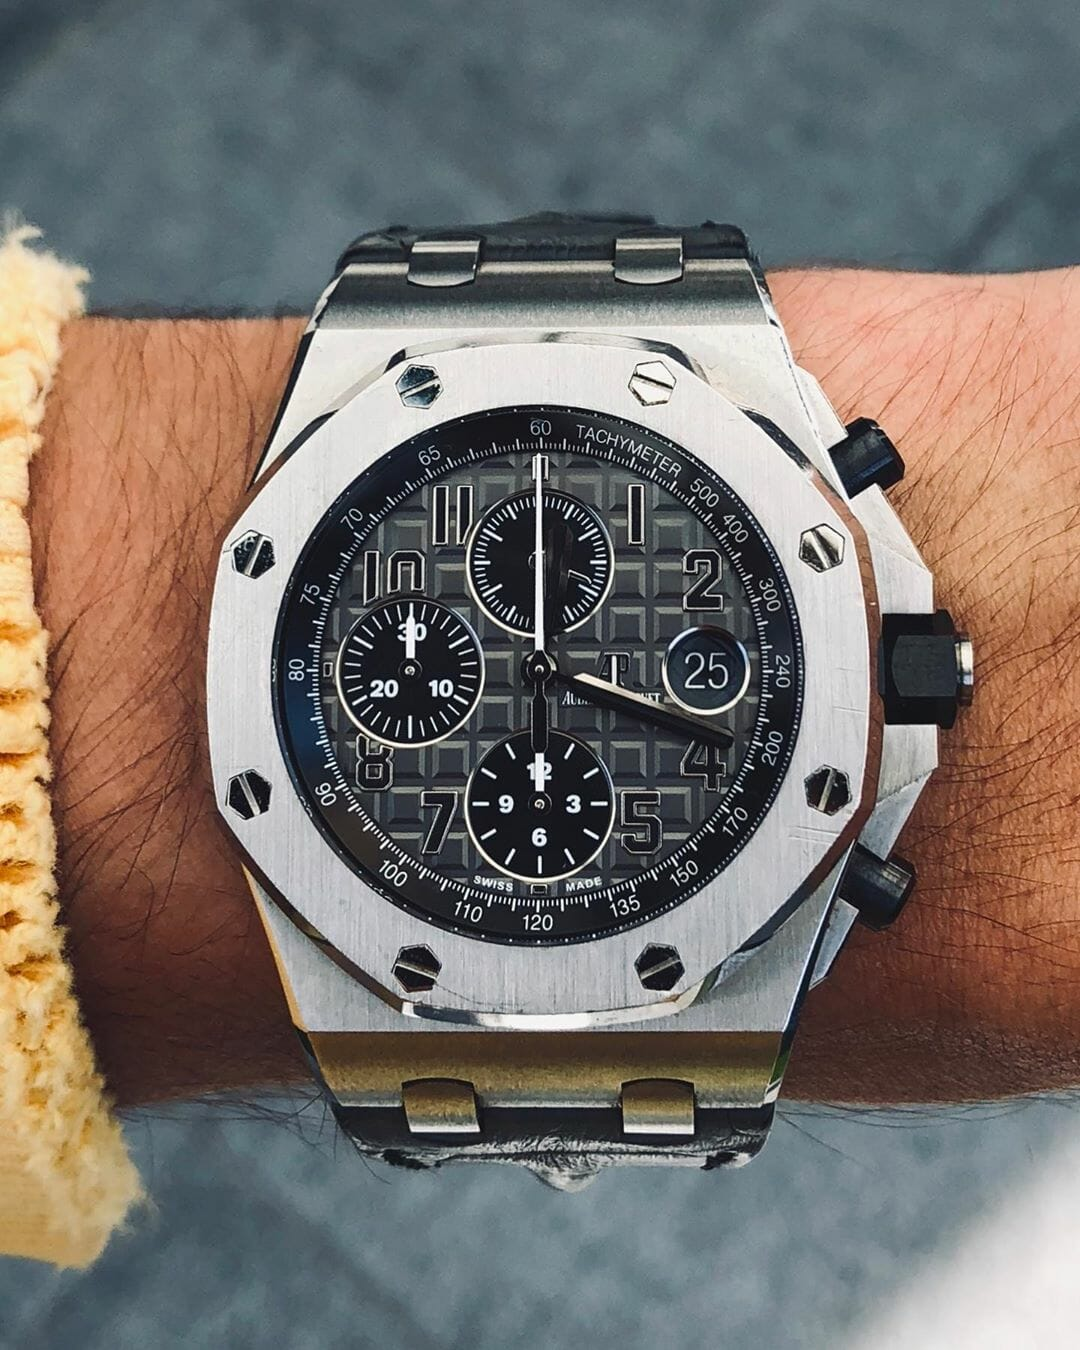 1 Audemars Piguet Royal Oak Offshore Elefant by IG @watchrookiee - Image 1